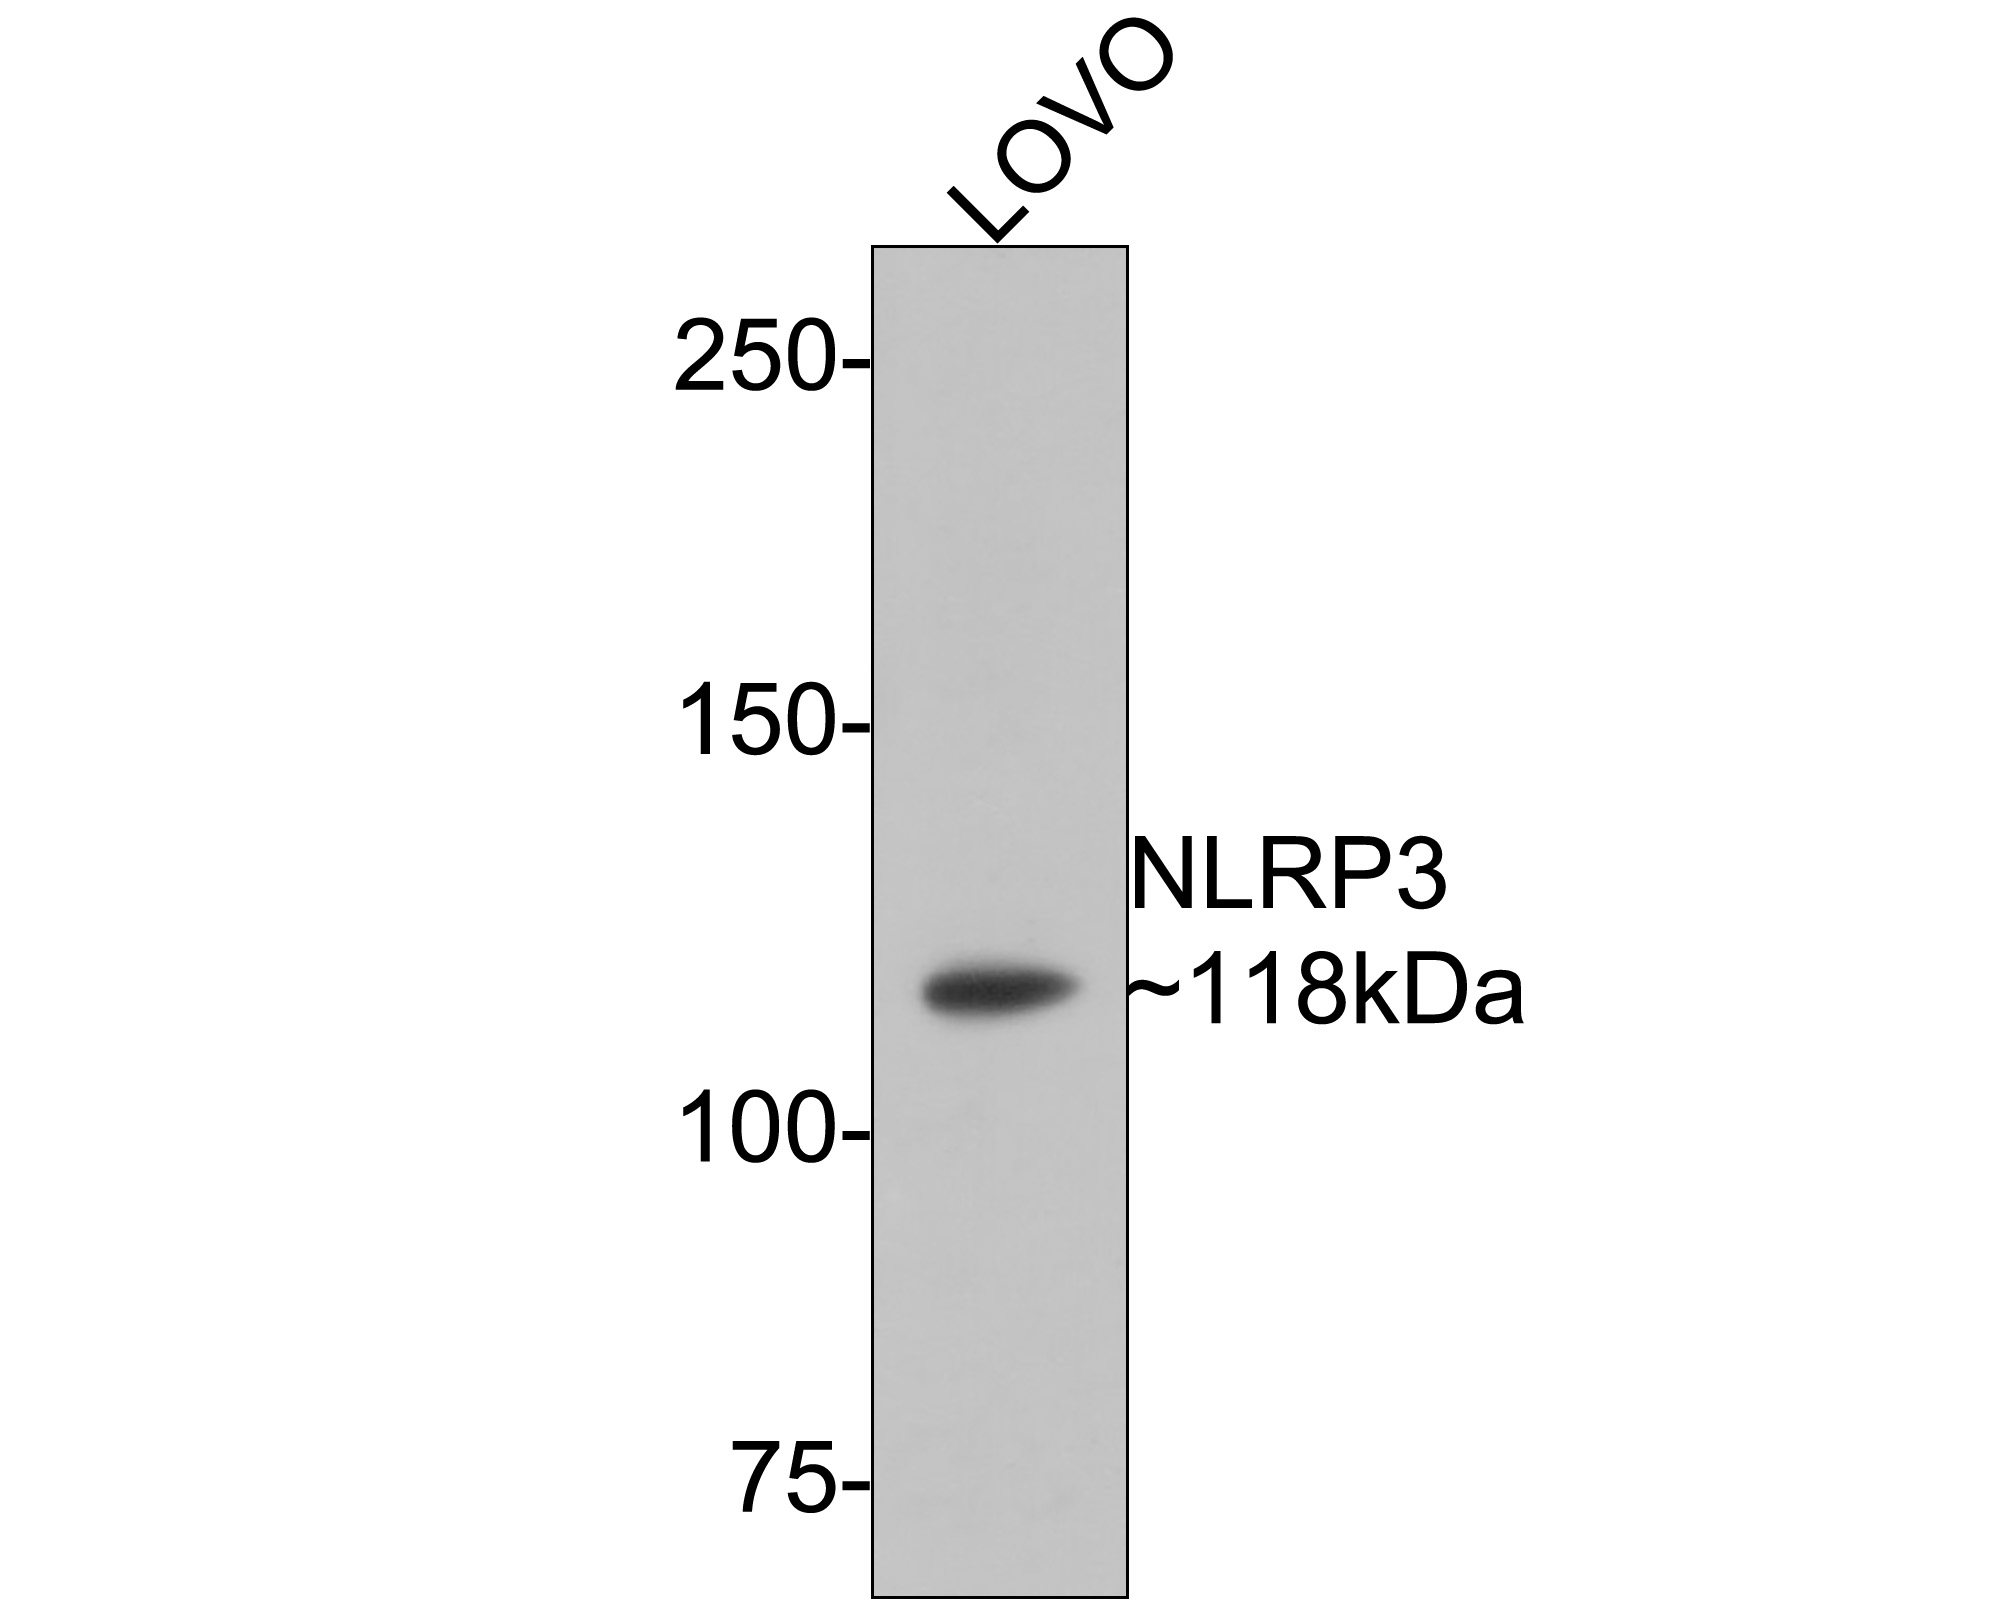 Western blot analysis of NLRP3 on different lysates using anti-NLRP3 antibody at 1/1,000 dilution.<br />   Positive control:<br />   Lane 1: Human lung <br />   Lane 2: Mouse thymus<br />   Lane 3: THP-1